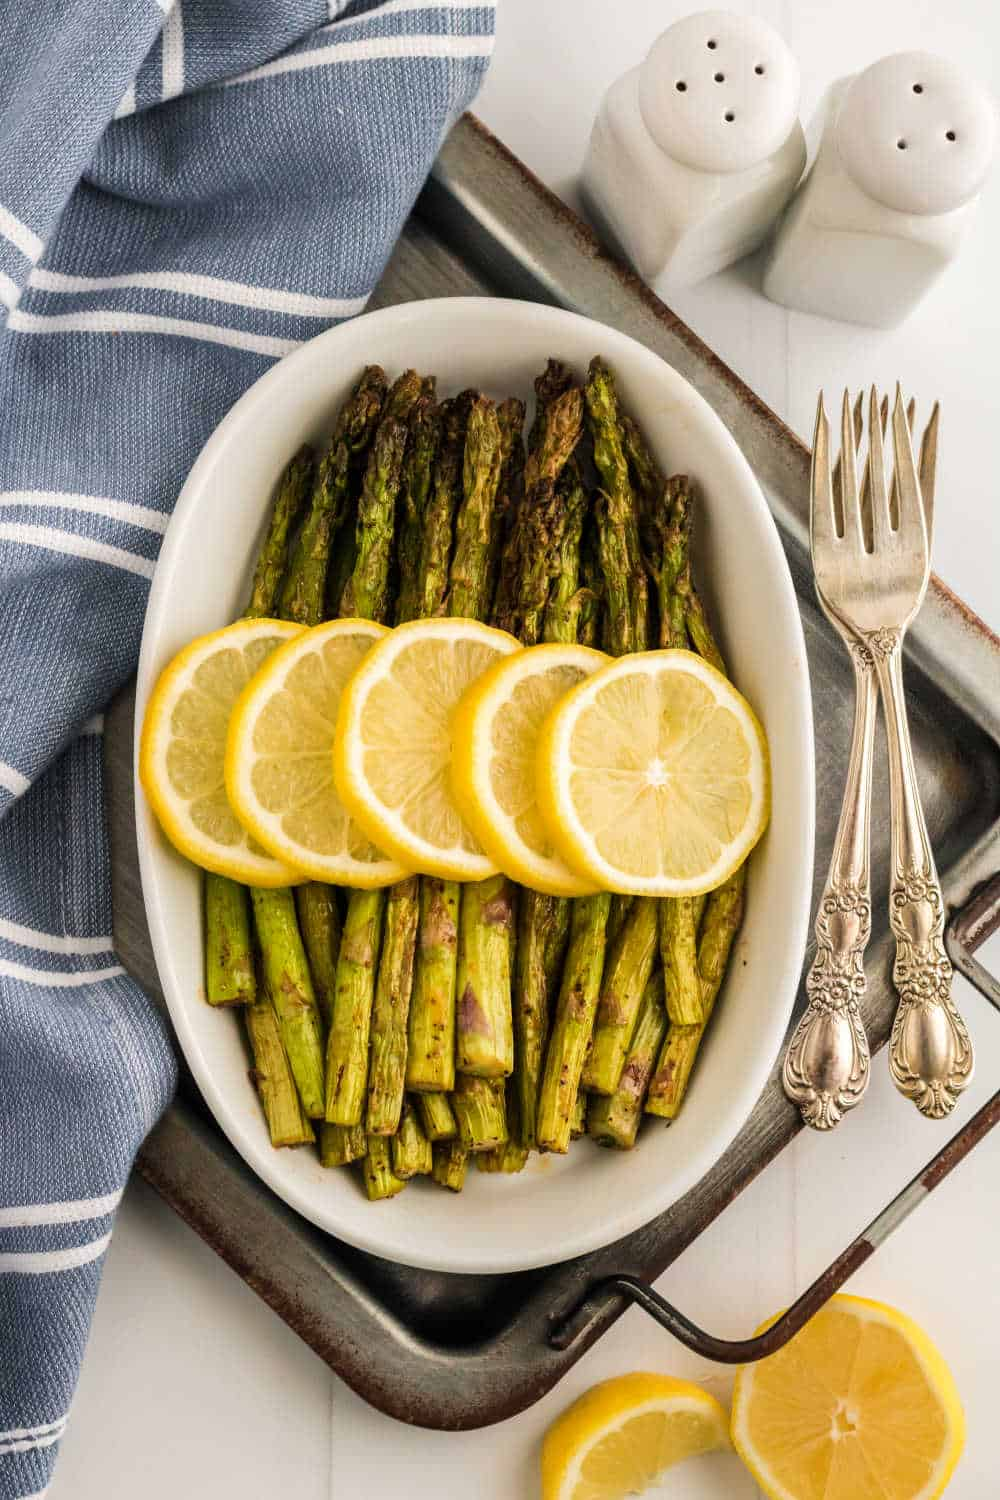 Asparagus topped with sliced lemon in a white casserole dish